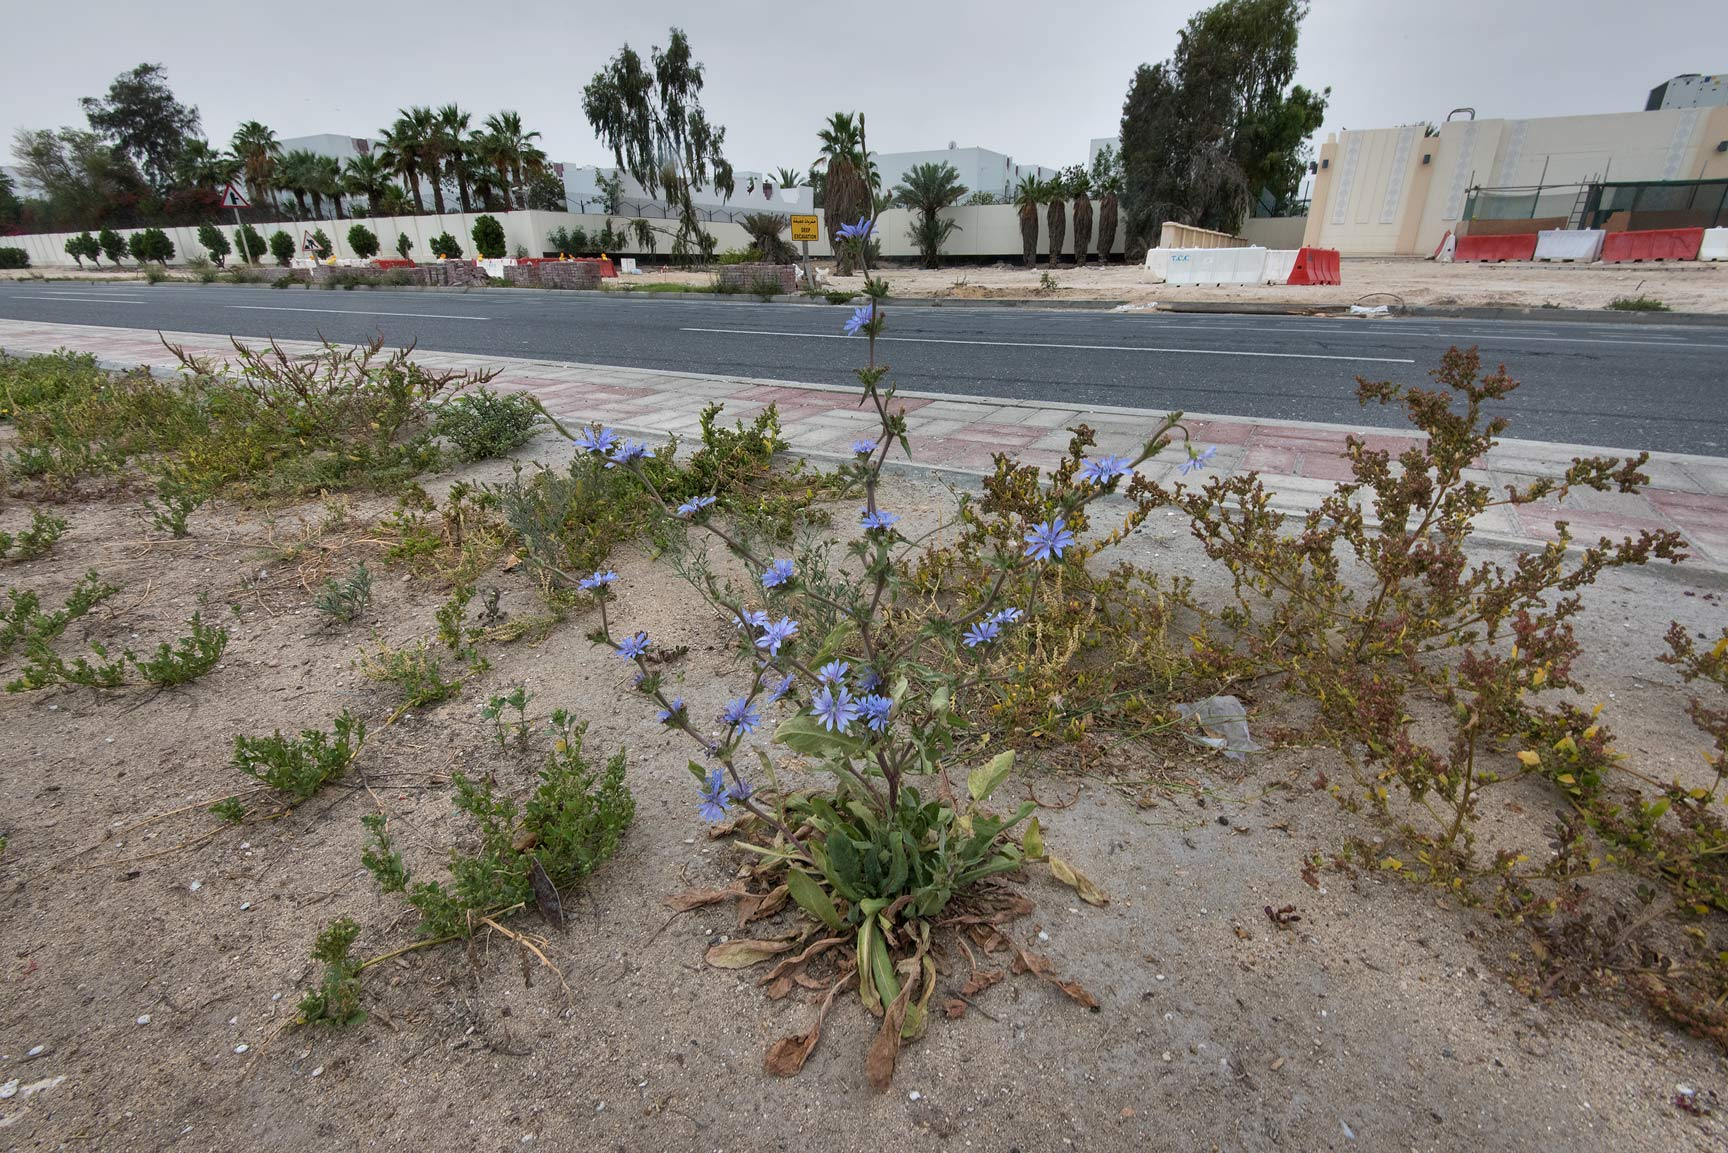 Blooming chicory (Cichorium pumilum) on the...St. in Onaiza area. Doha, Qatar